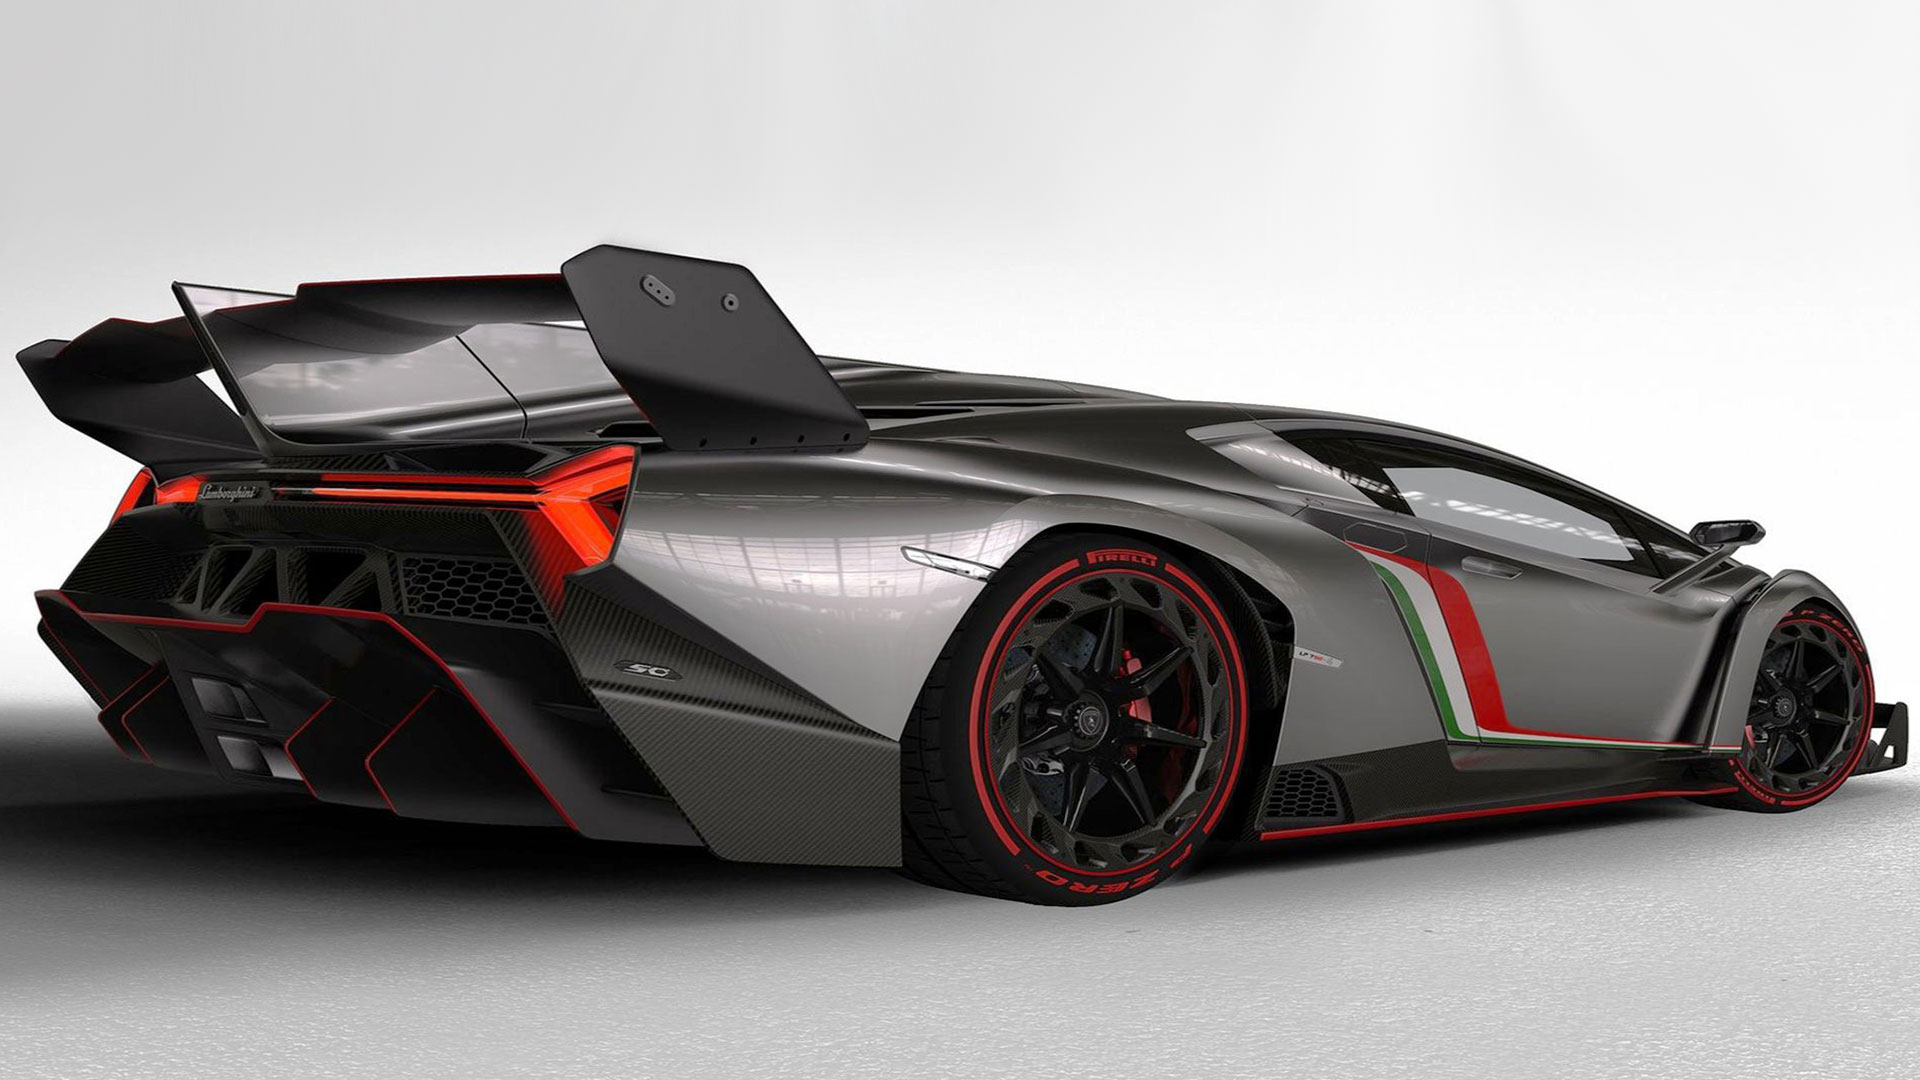 lamborghini veneno hd wallpaper 1080p download images